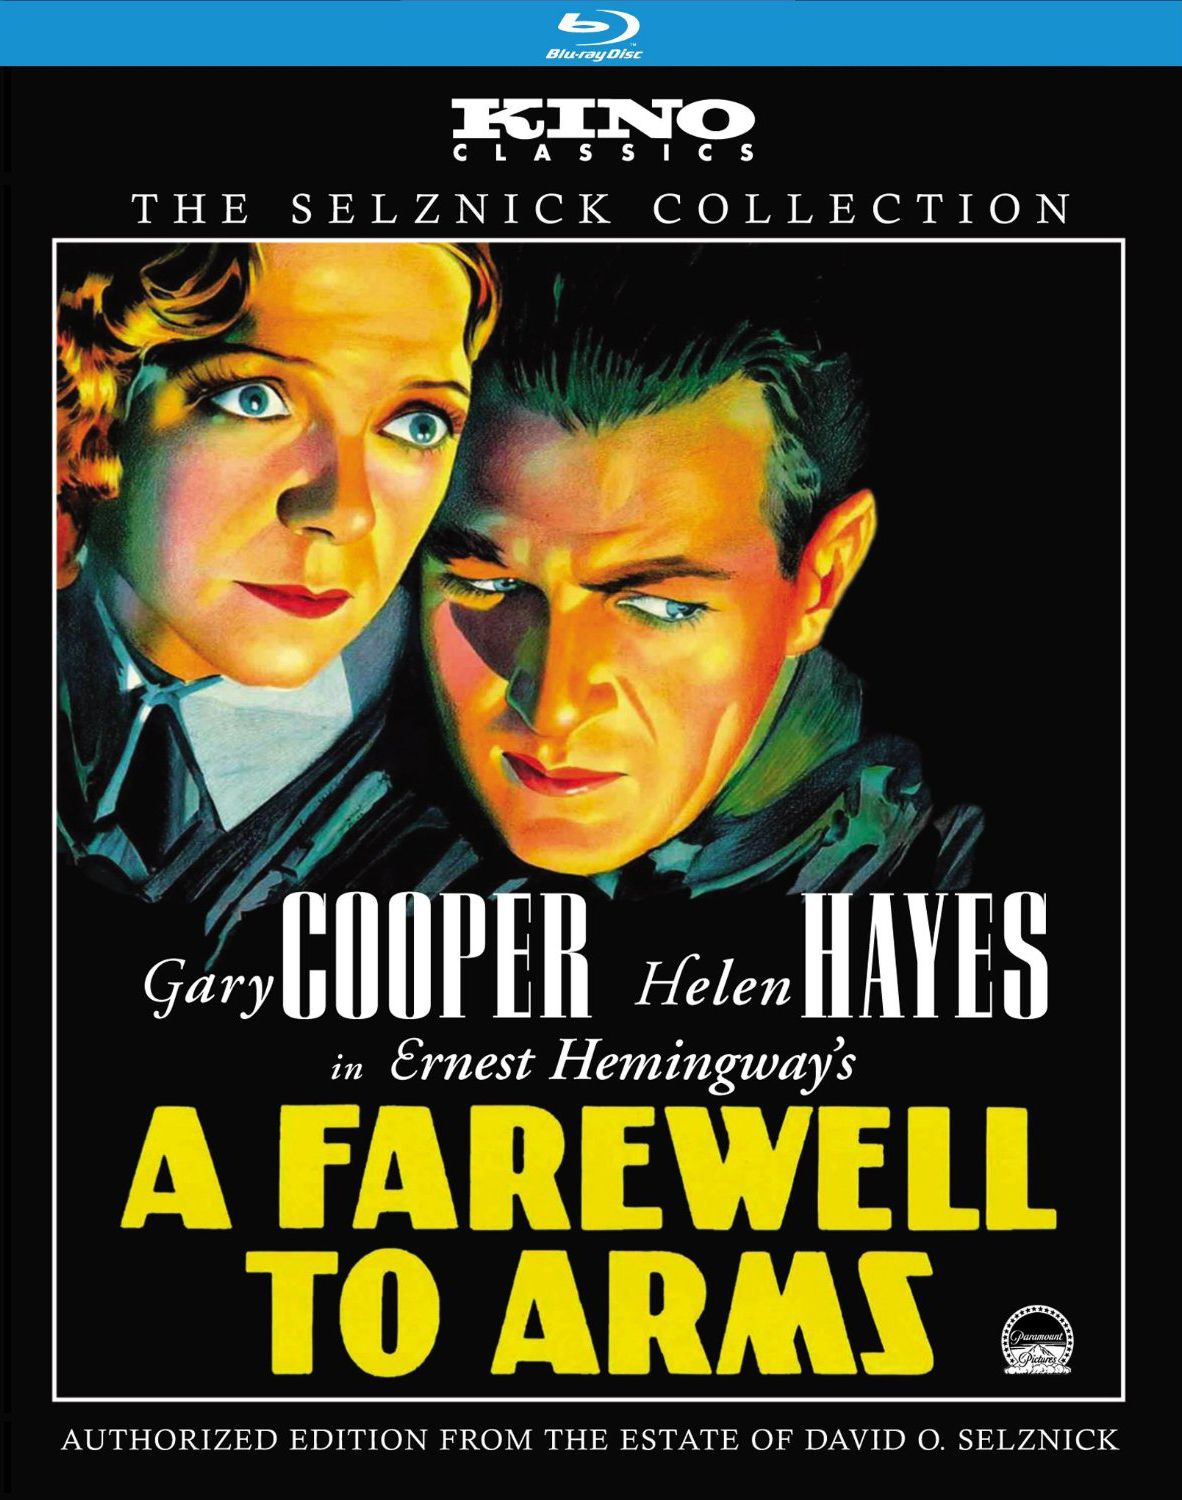 139a7aecfb33a Blu-ray Review: A Farewell to Arms - Slant Magazine